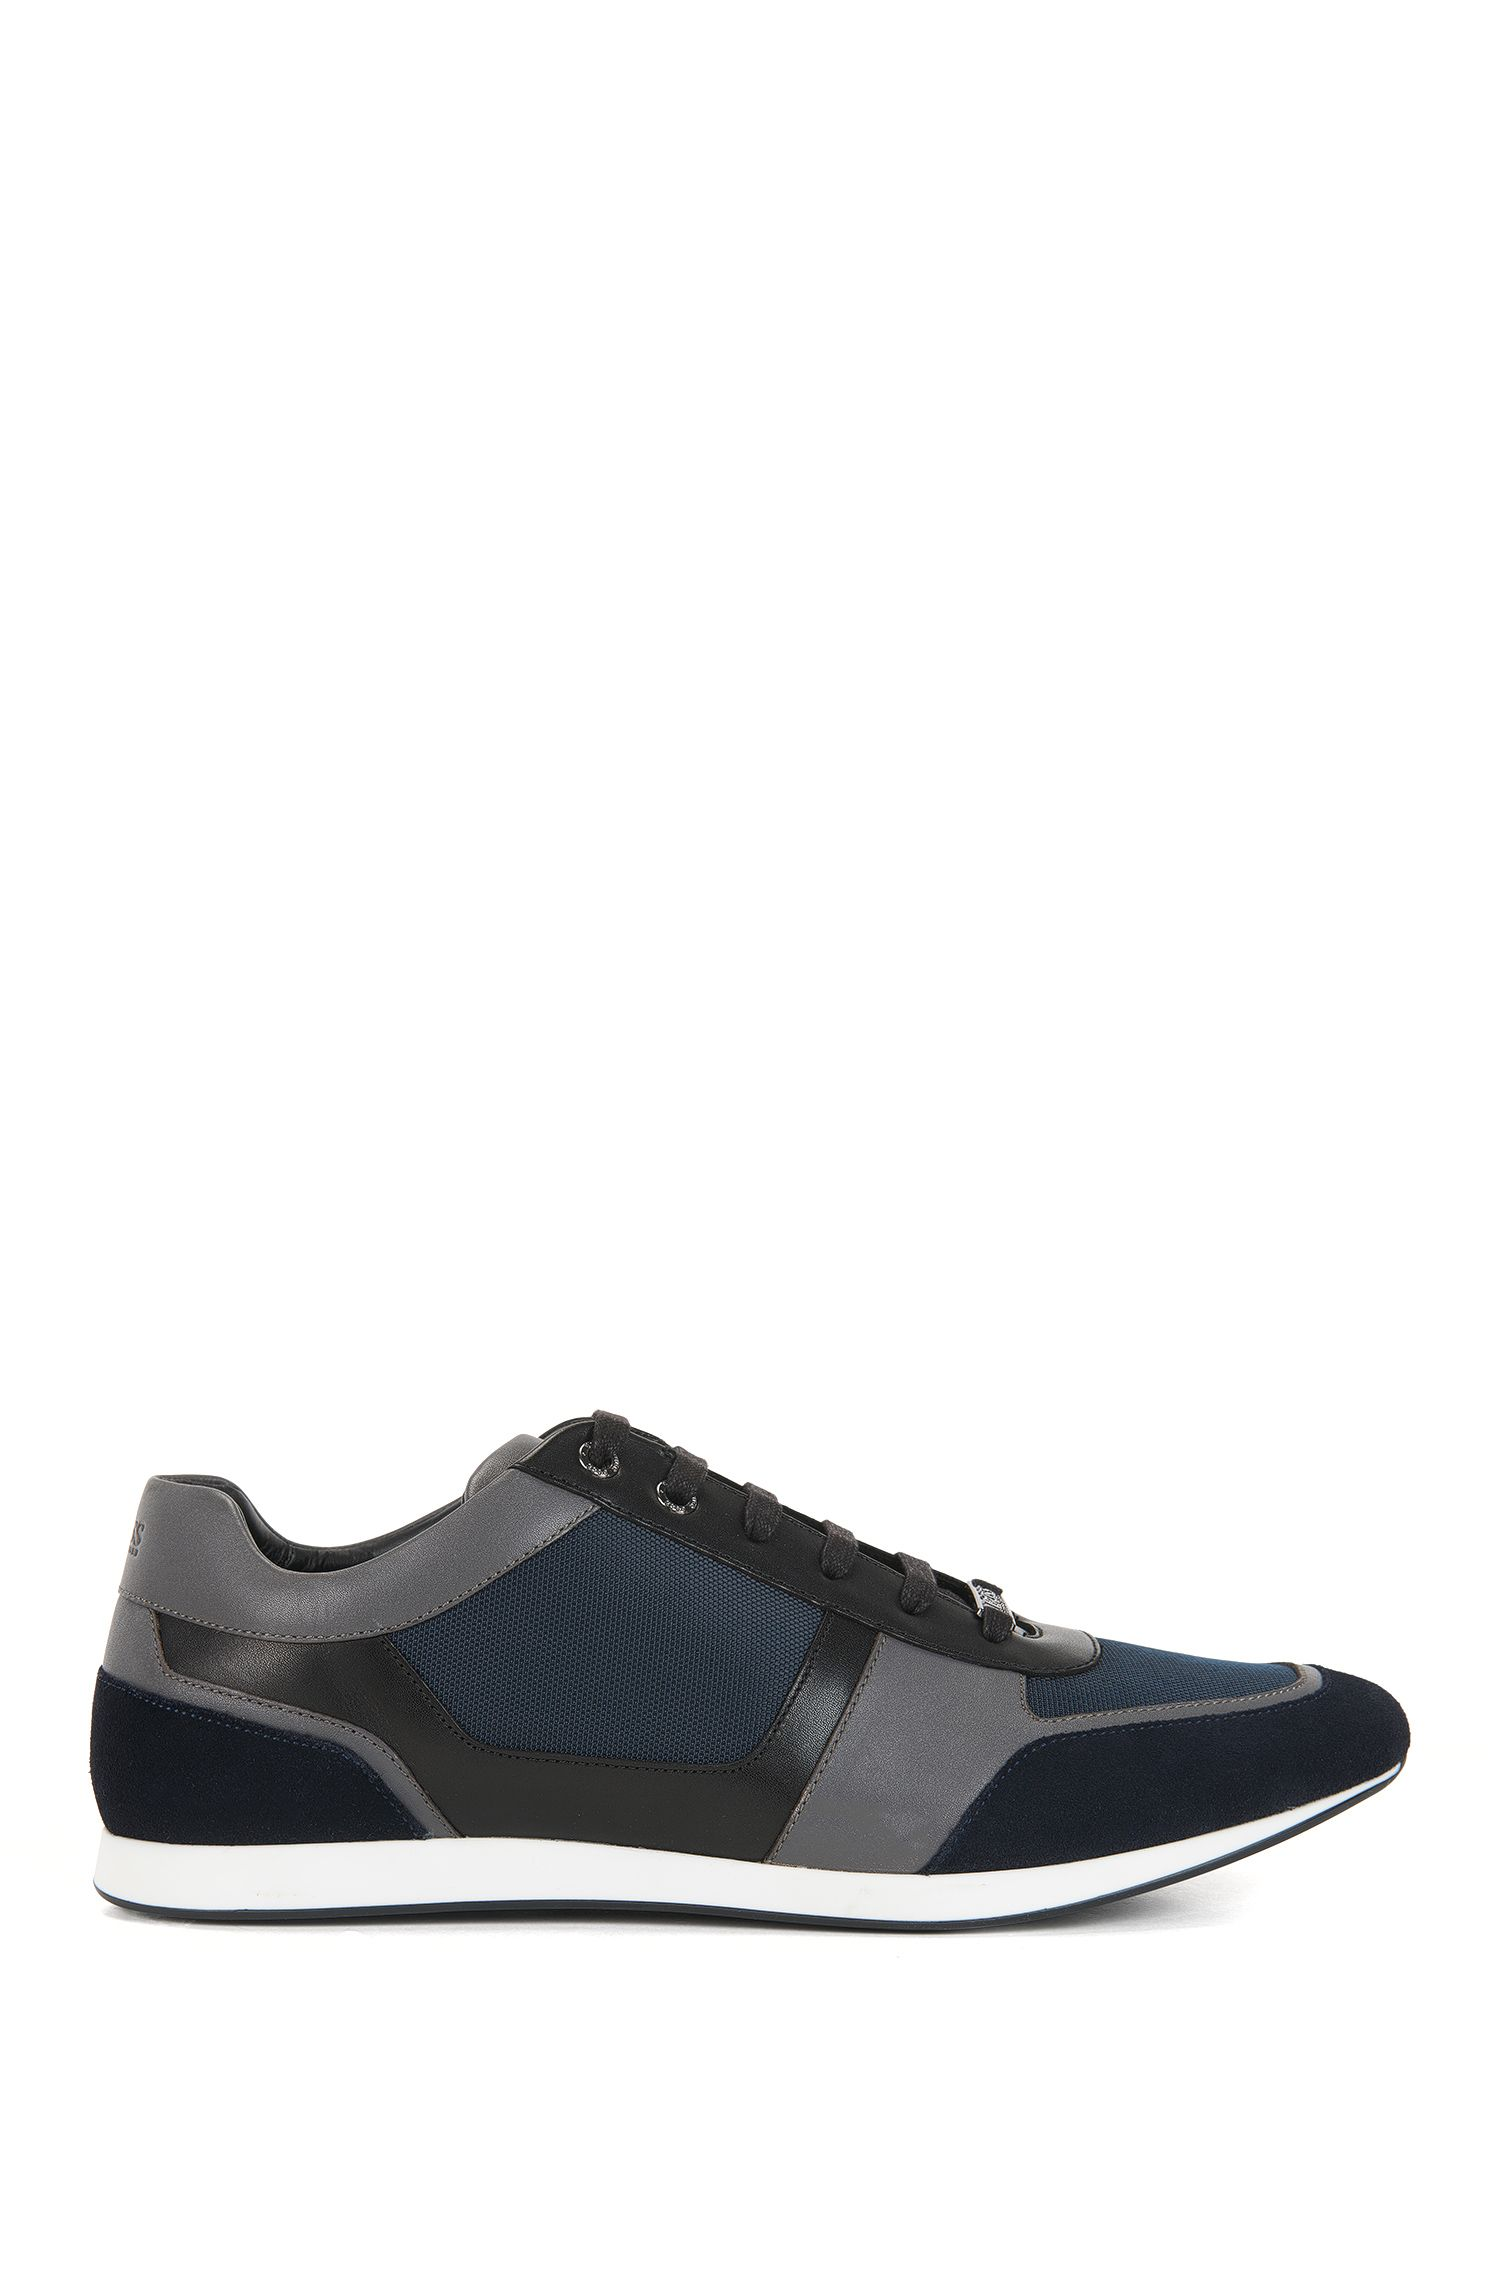 Leather & Suede Sneaker   Fulltime Lowp Mx